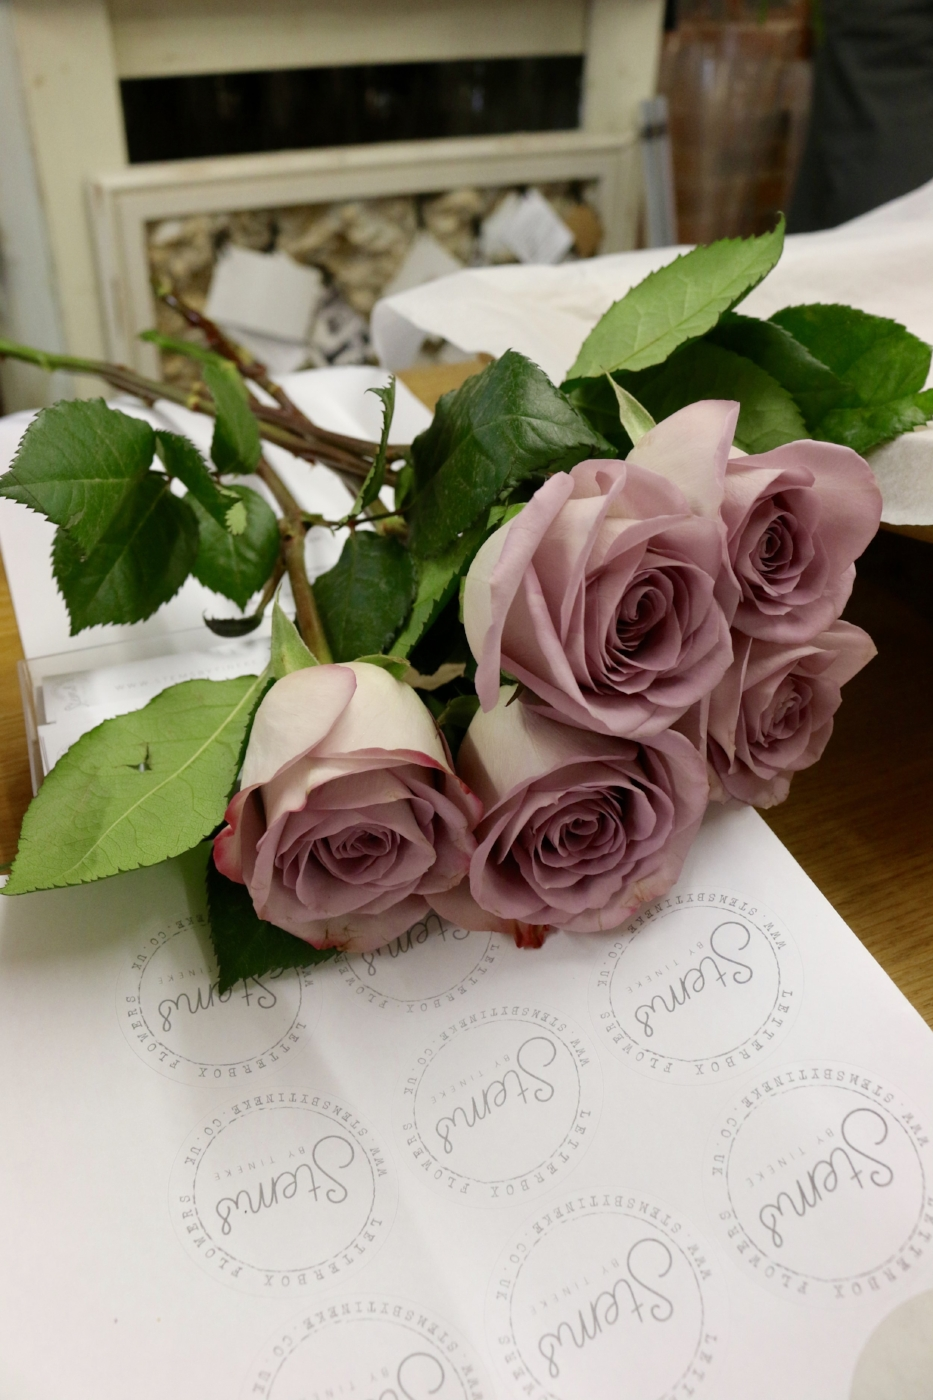 Flowers delivered in the post